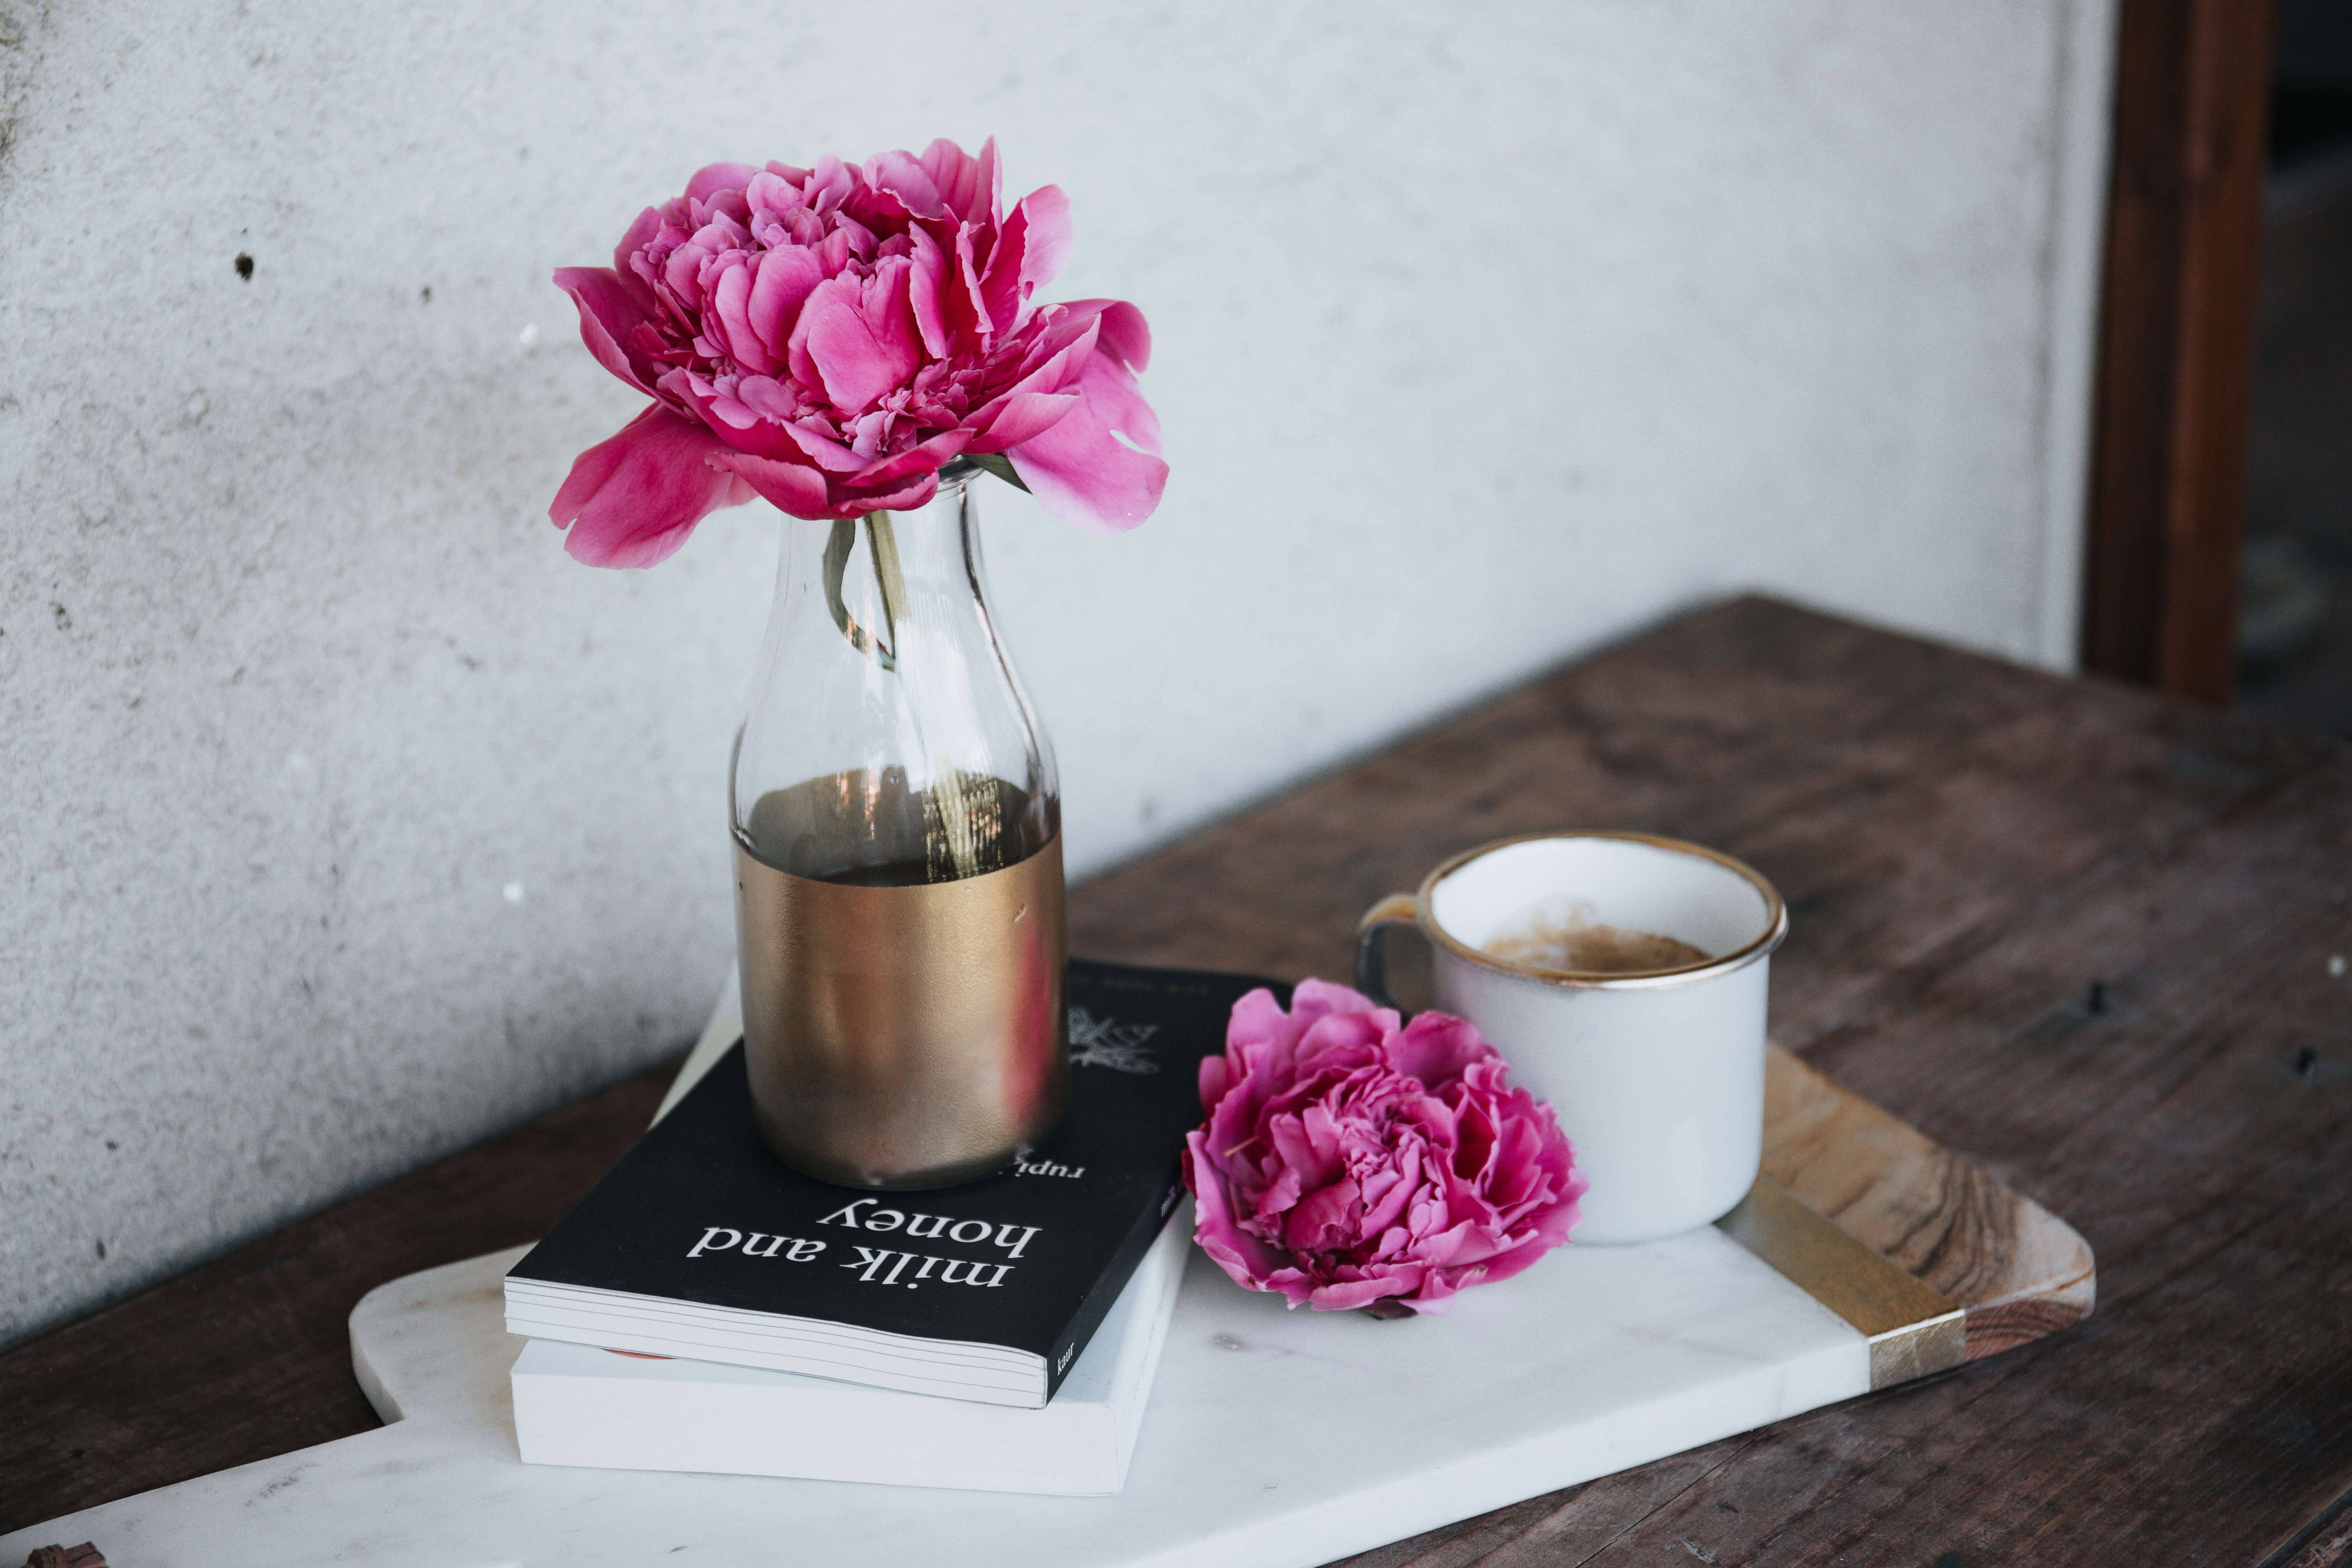 Intensely pink flowers in a vase standing on a book on a wooden chopping board